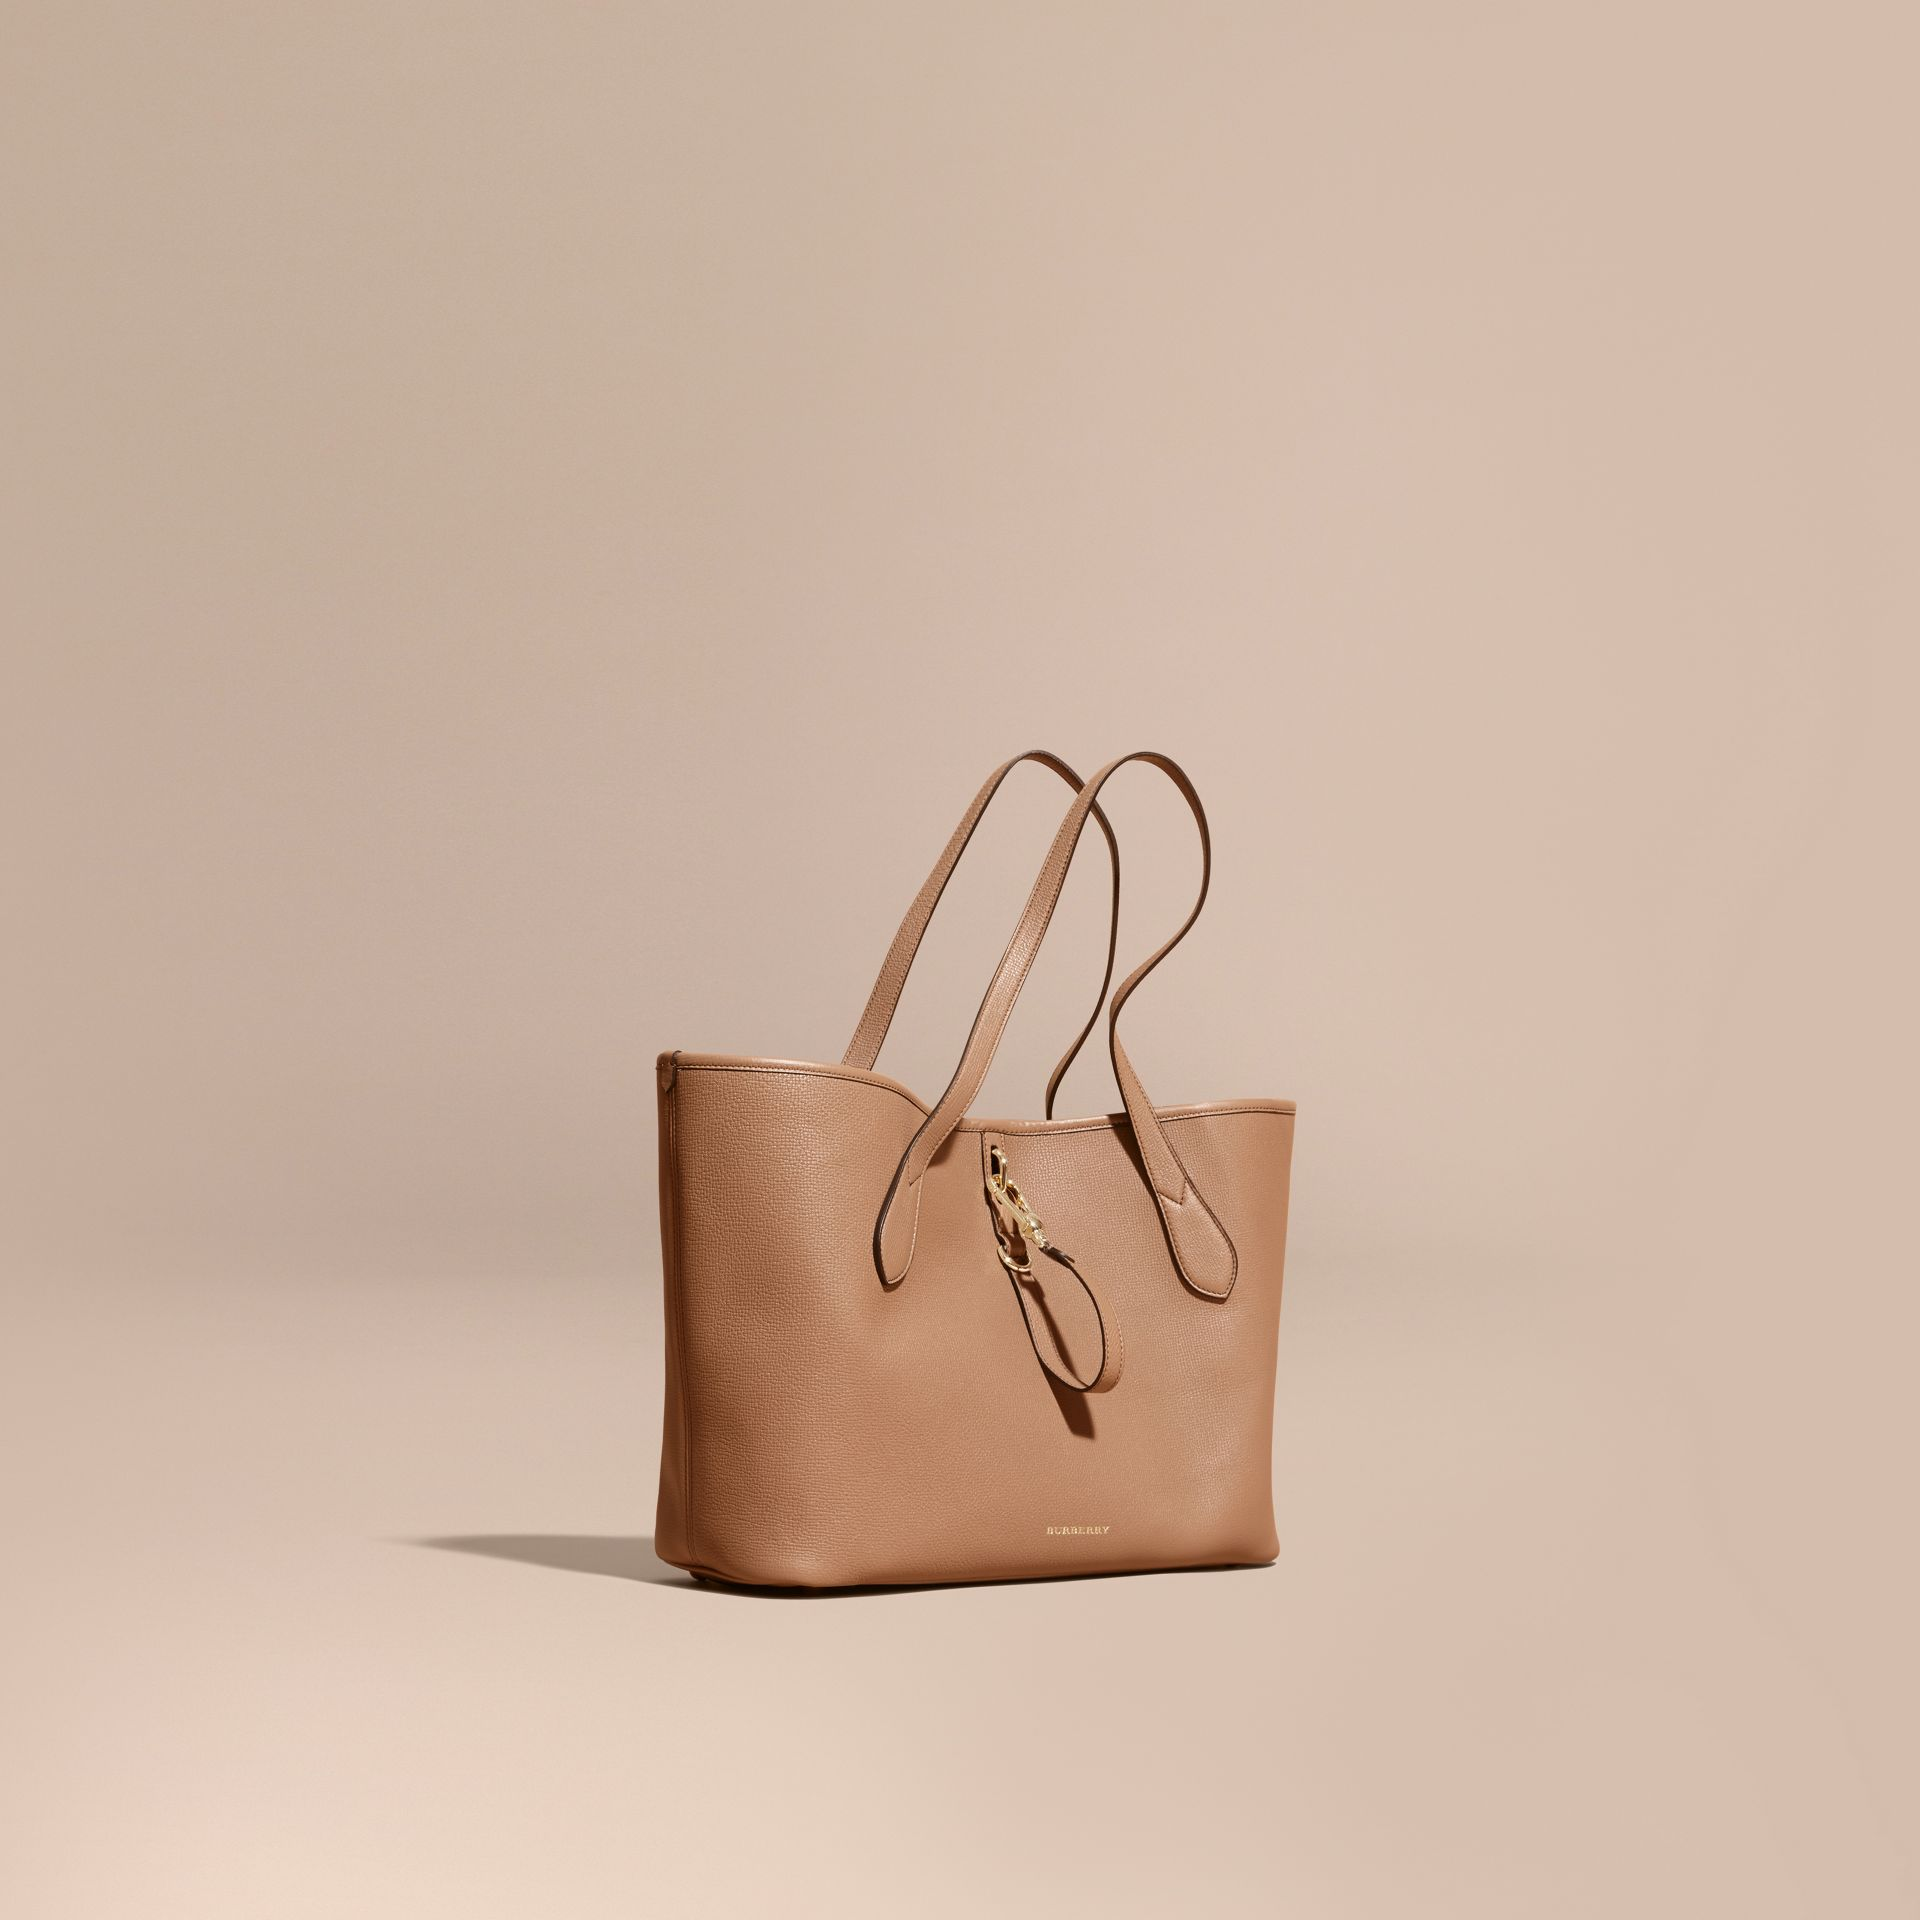 Sac tote medium en cuir grainé Sable Foncé - photo de la galerie 1